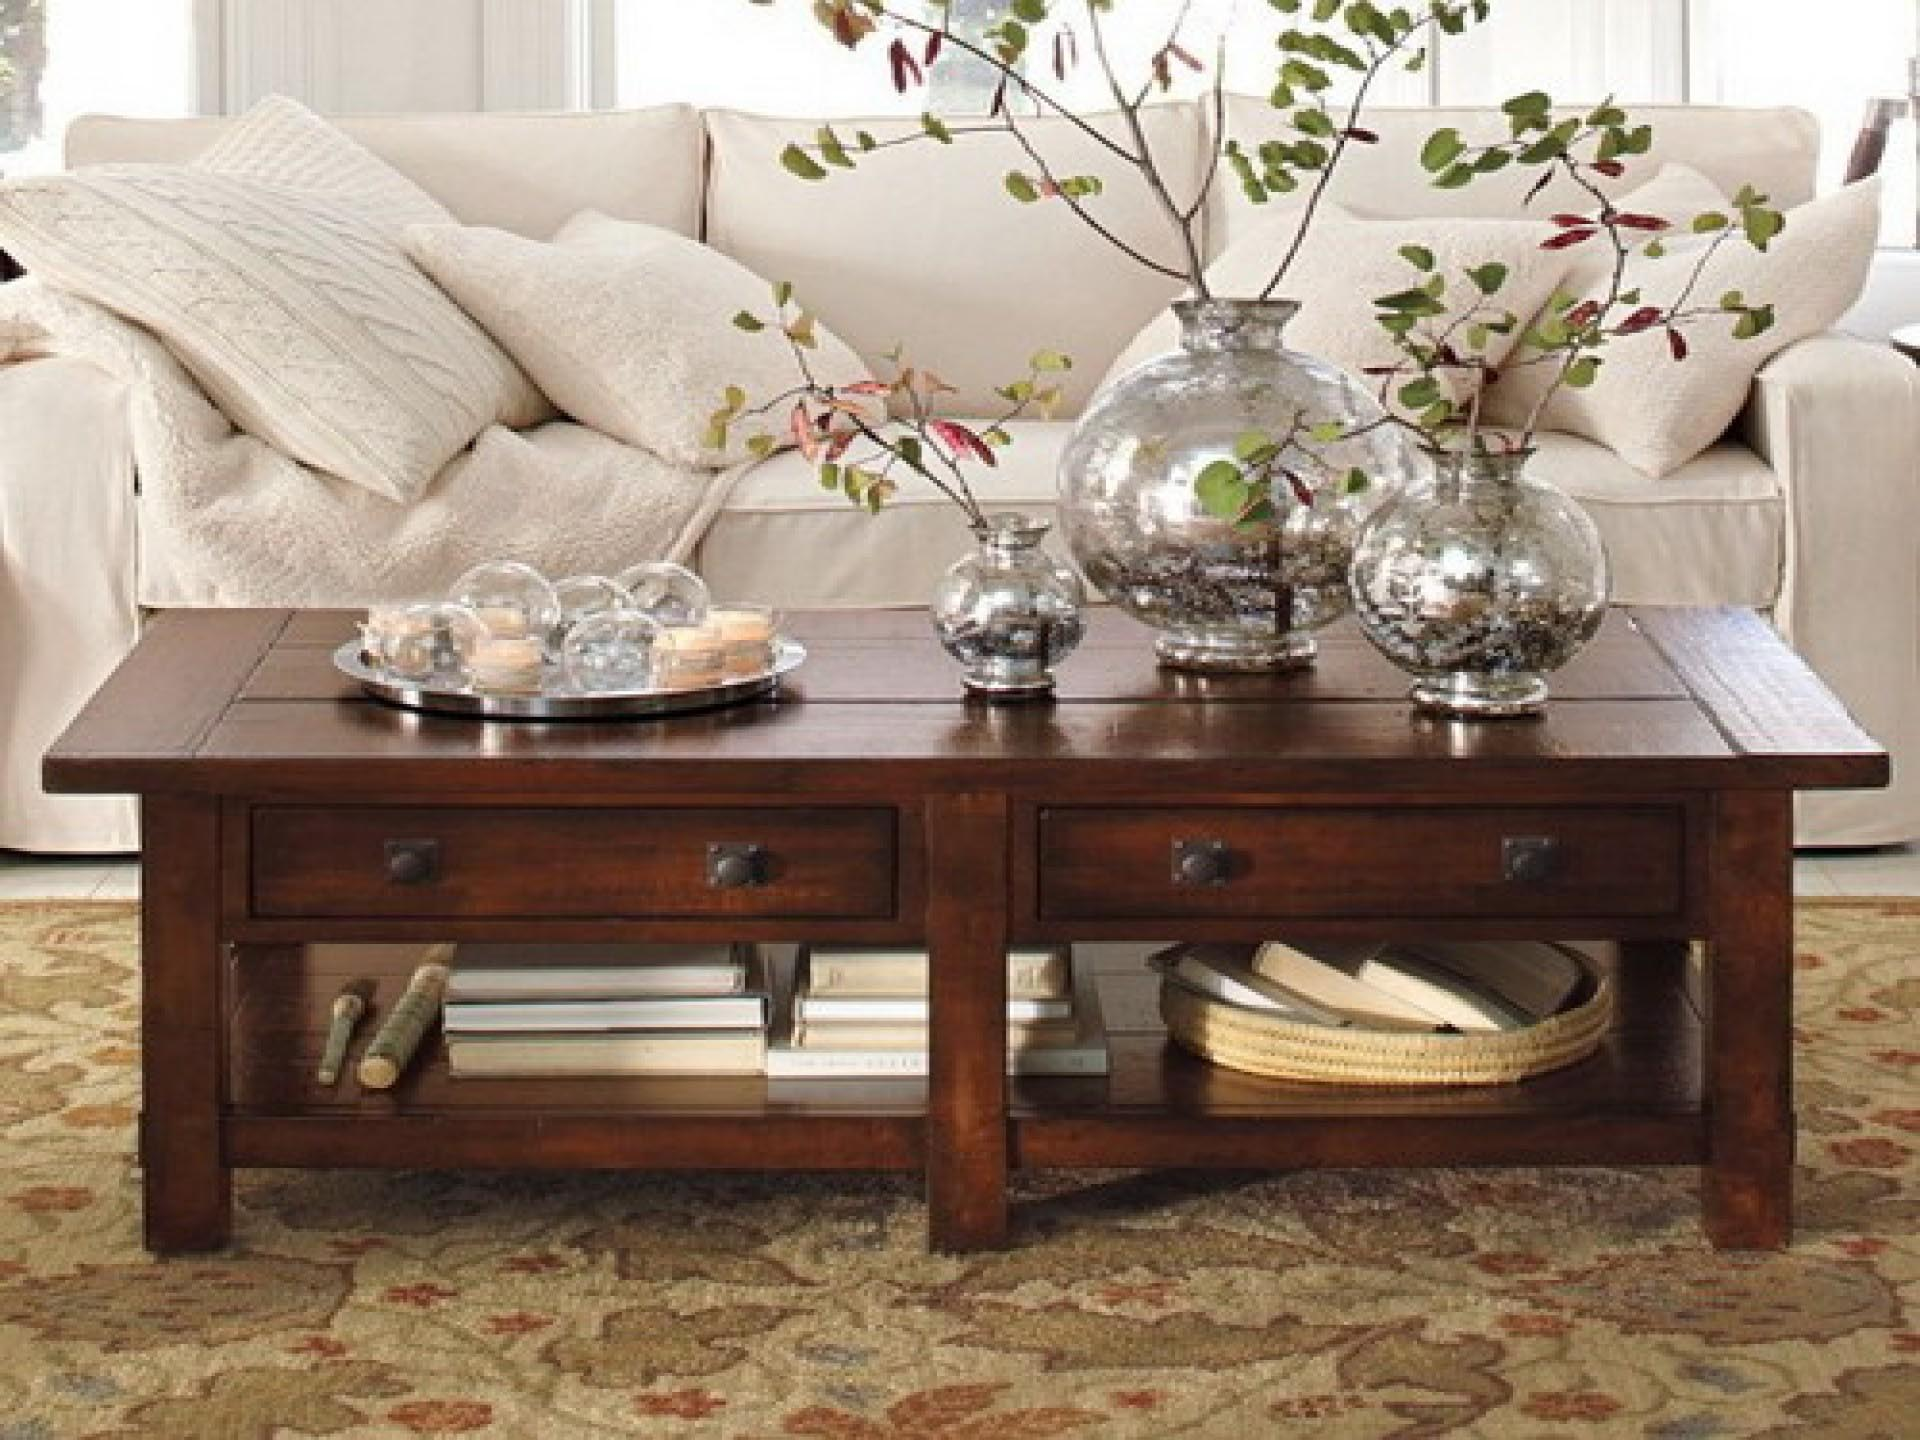 Glass Coffee Table Accessories Coffee Table Design Ideas